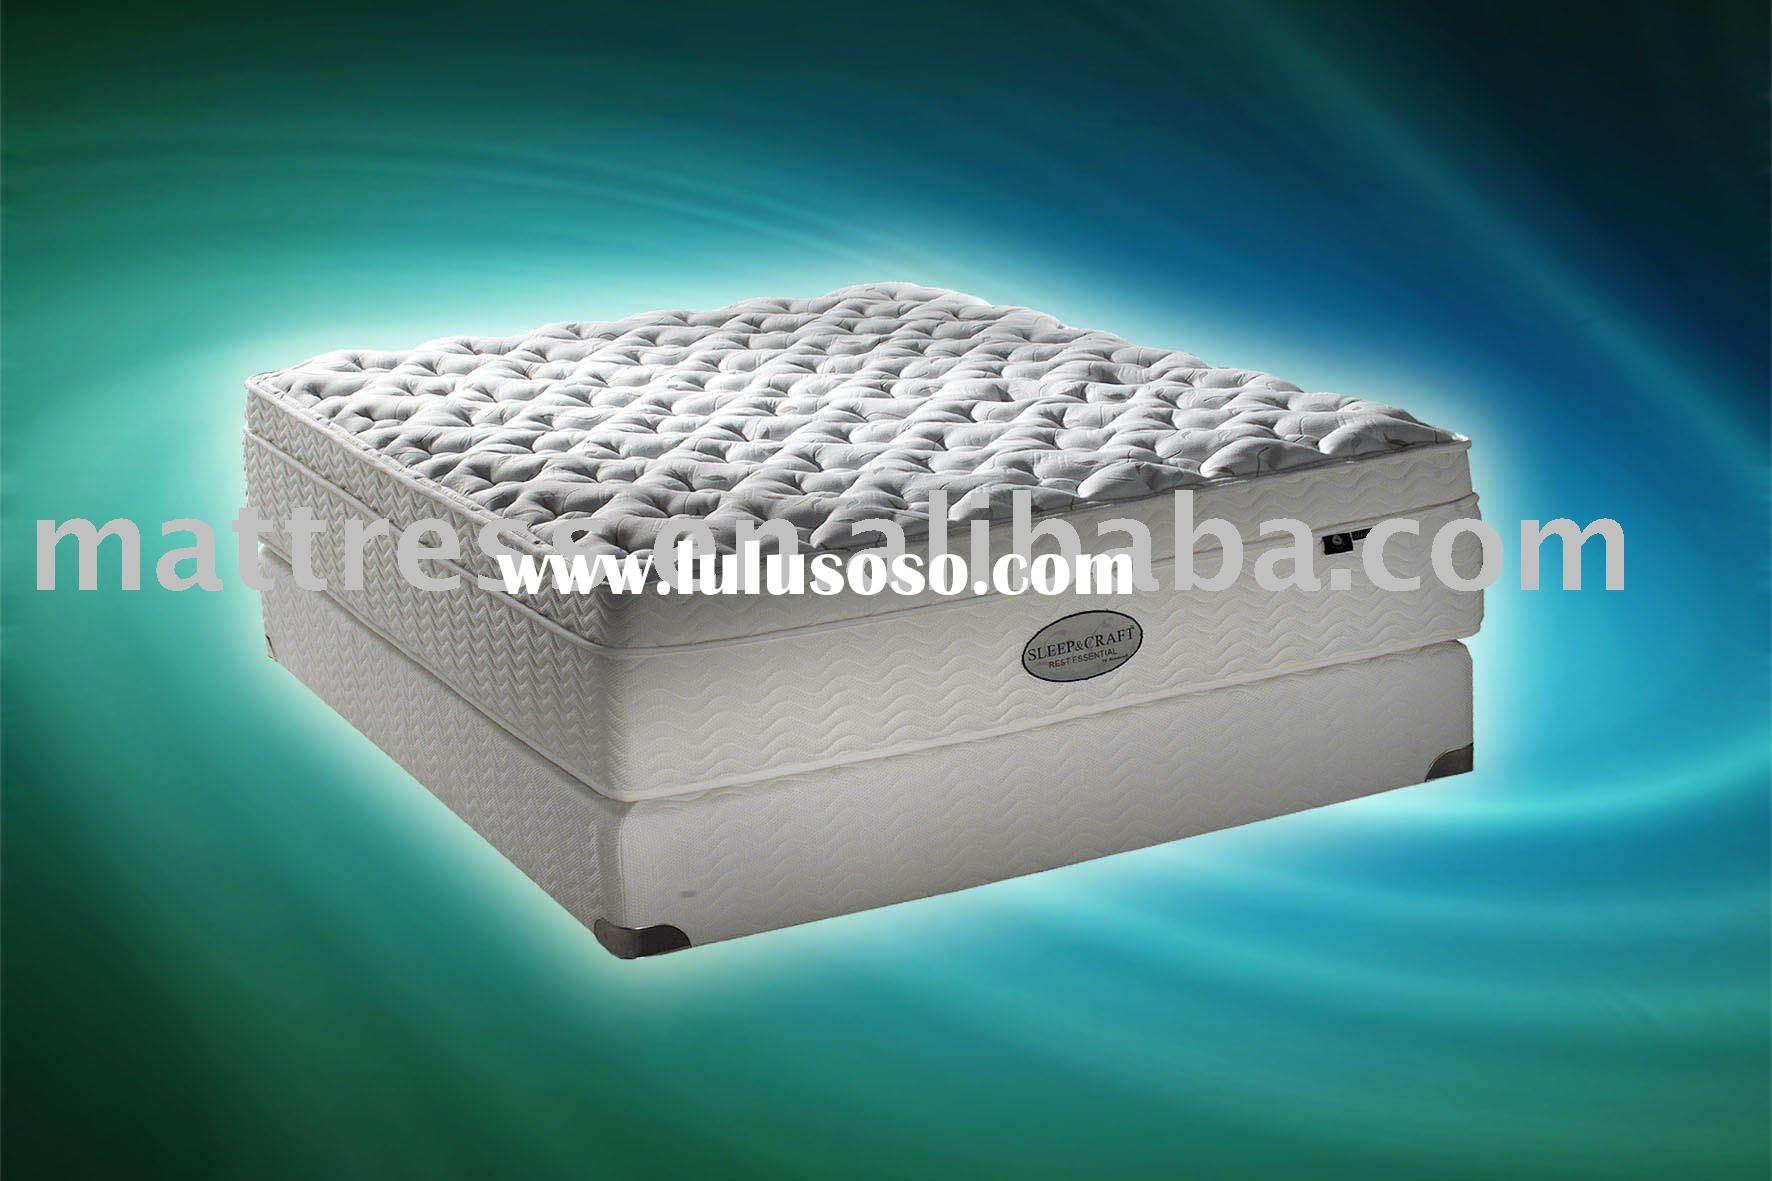 3-zone pocket spring mattress